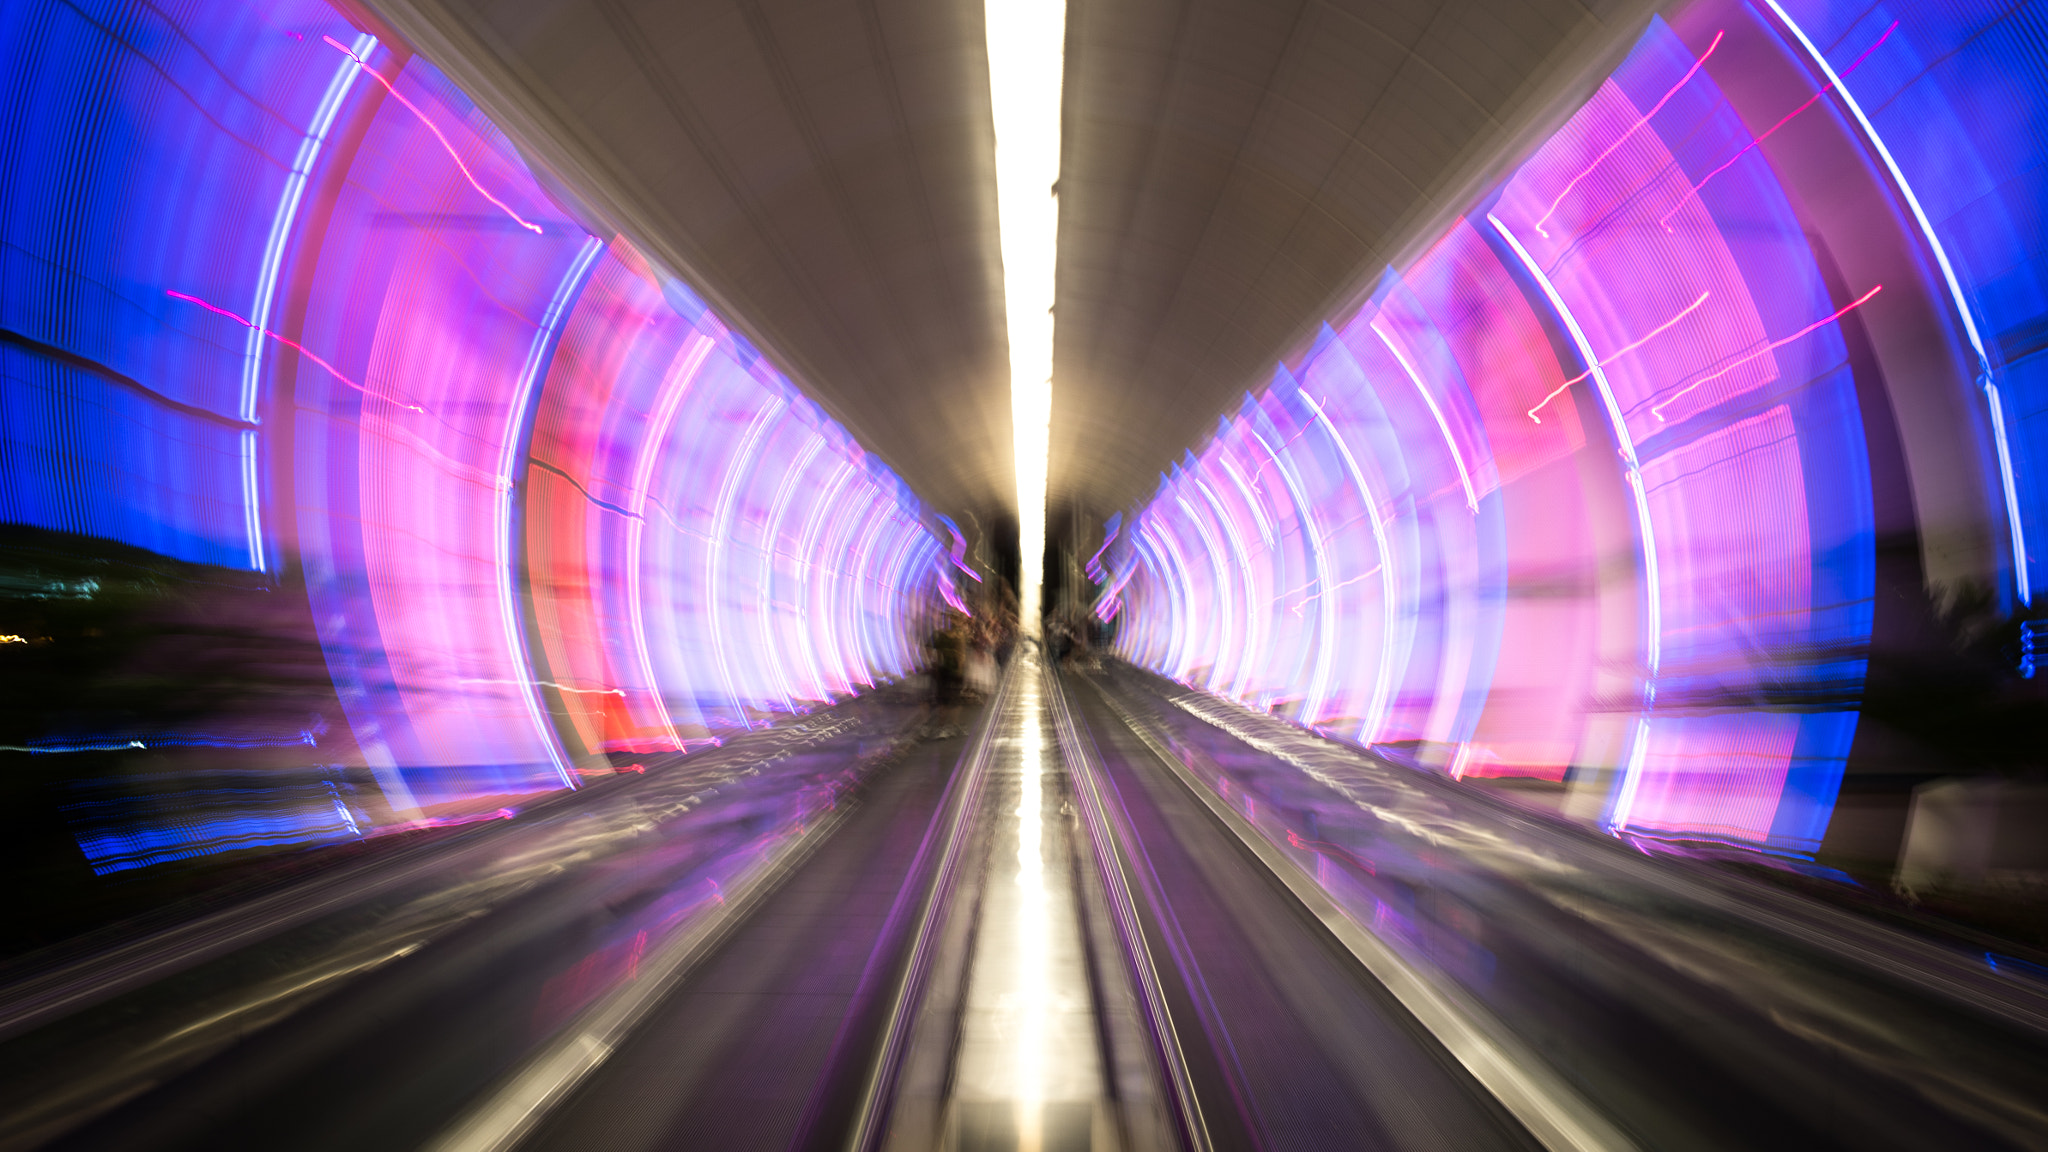 Photograph Tunnel by Saraputt S. on 500px